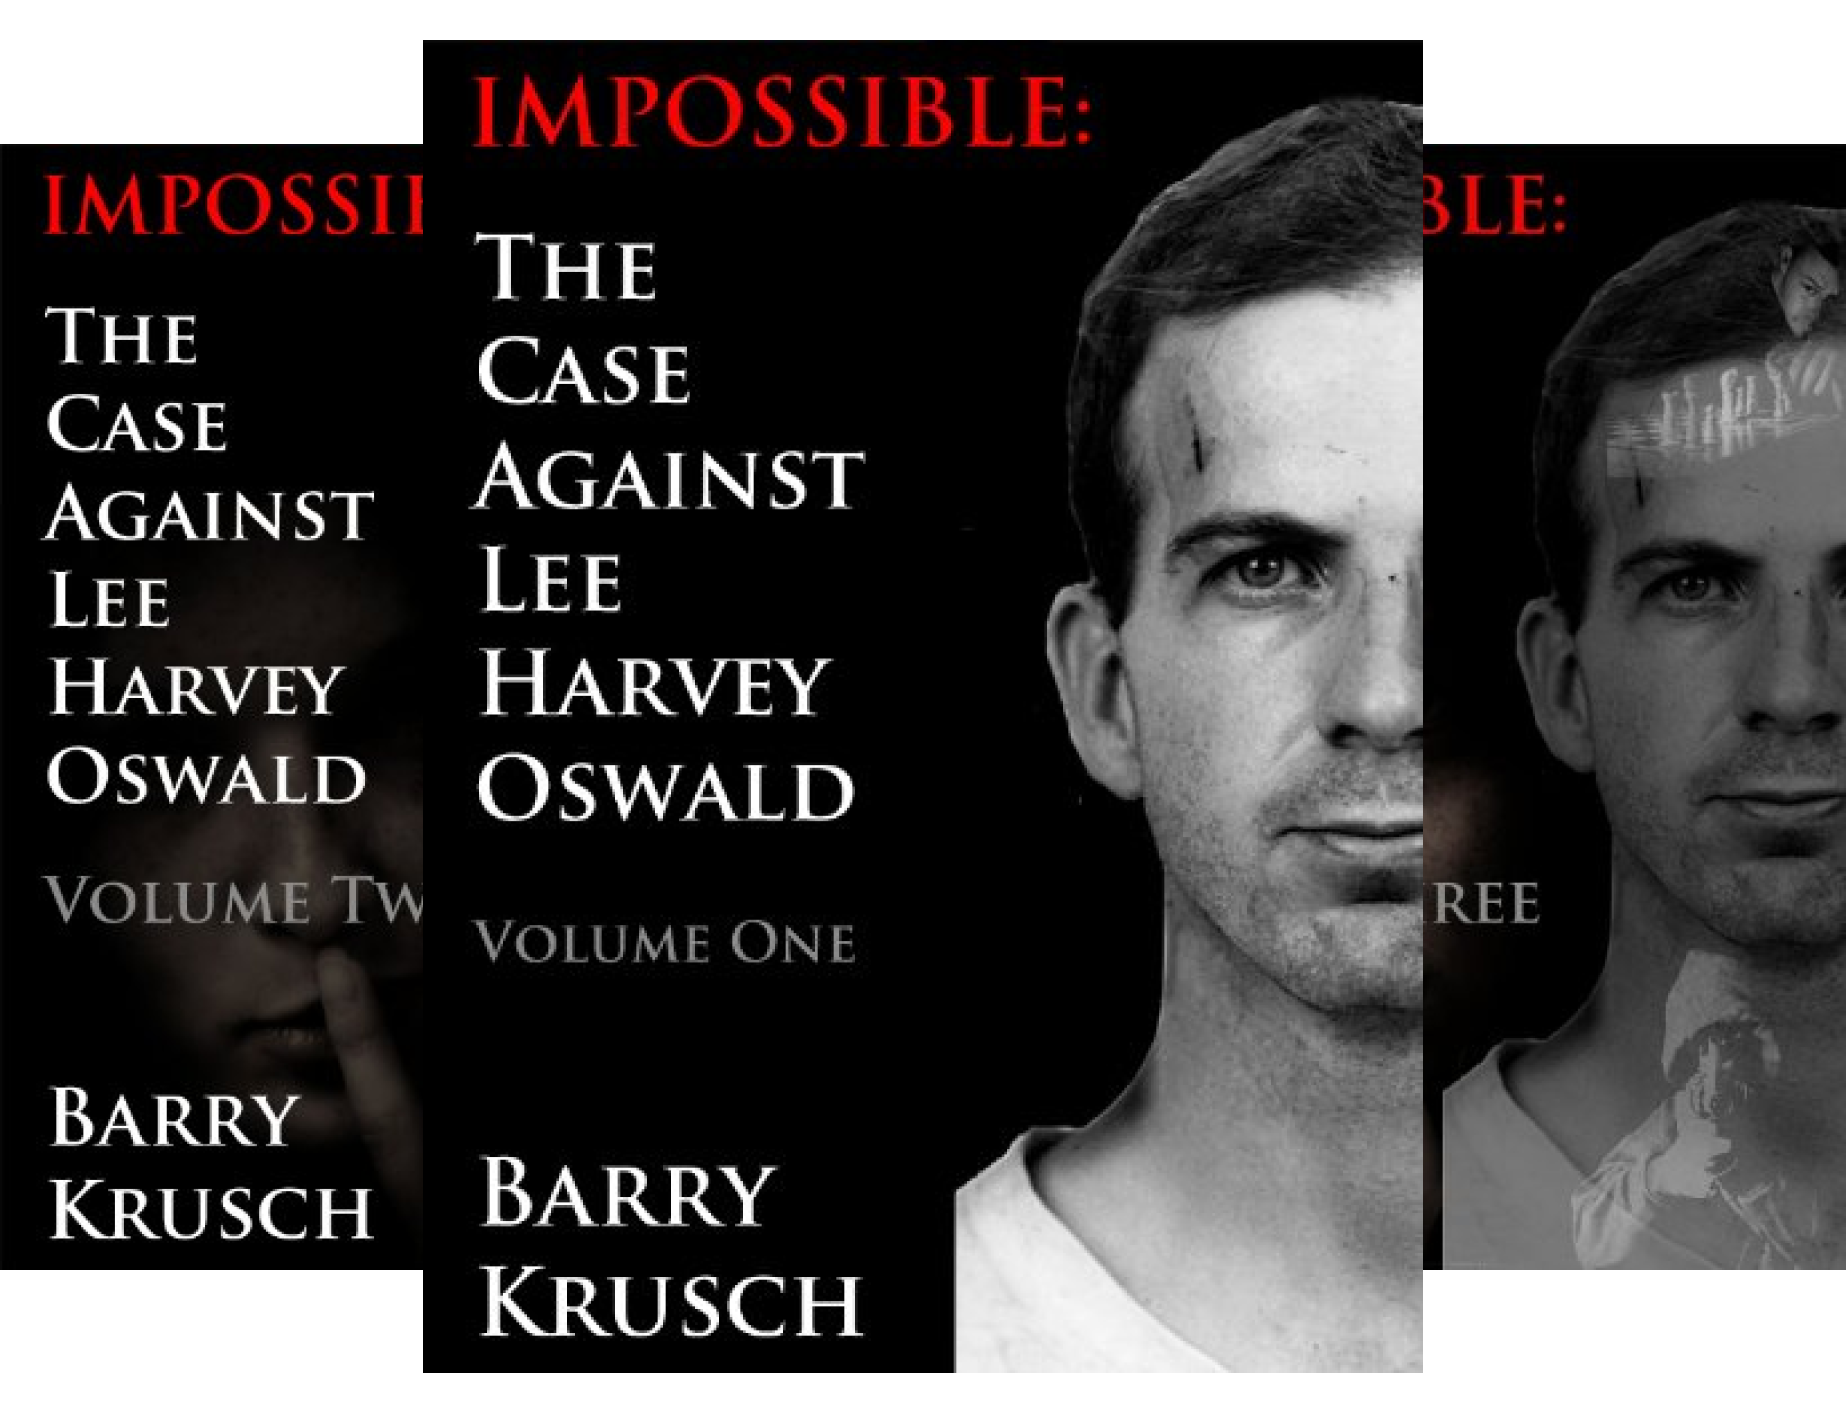 Download Impossible: The Case Against Lee Harvey Oswald (3 Book Series) B00XLZEETY